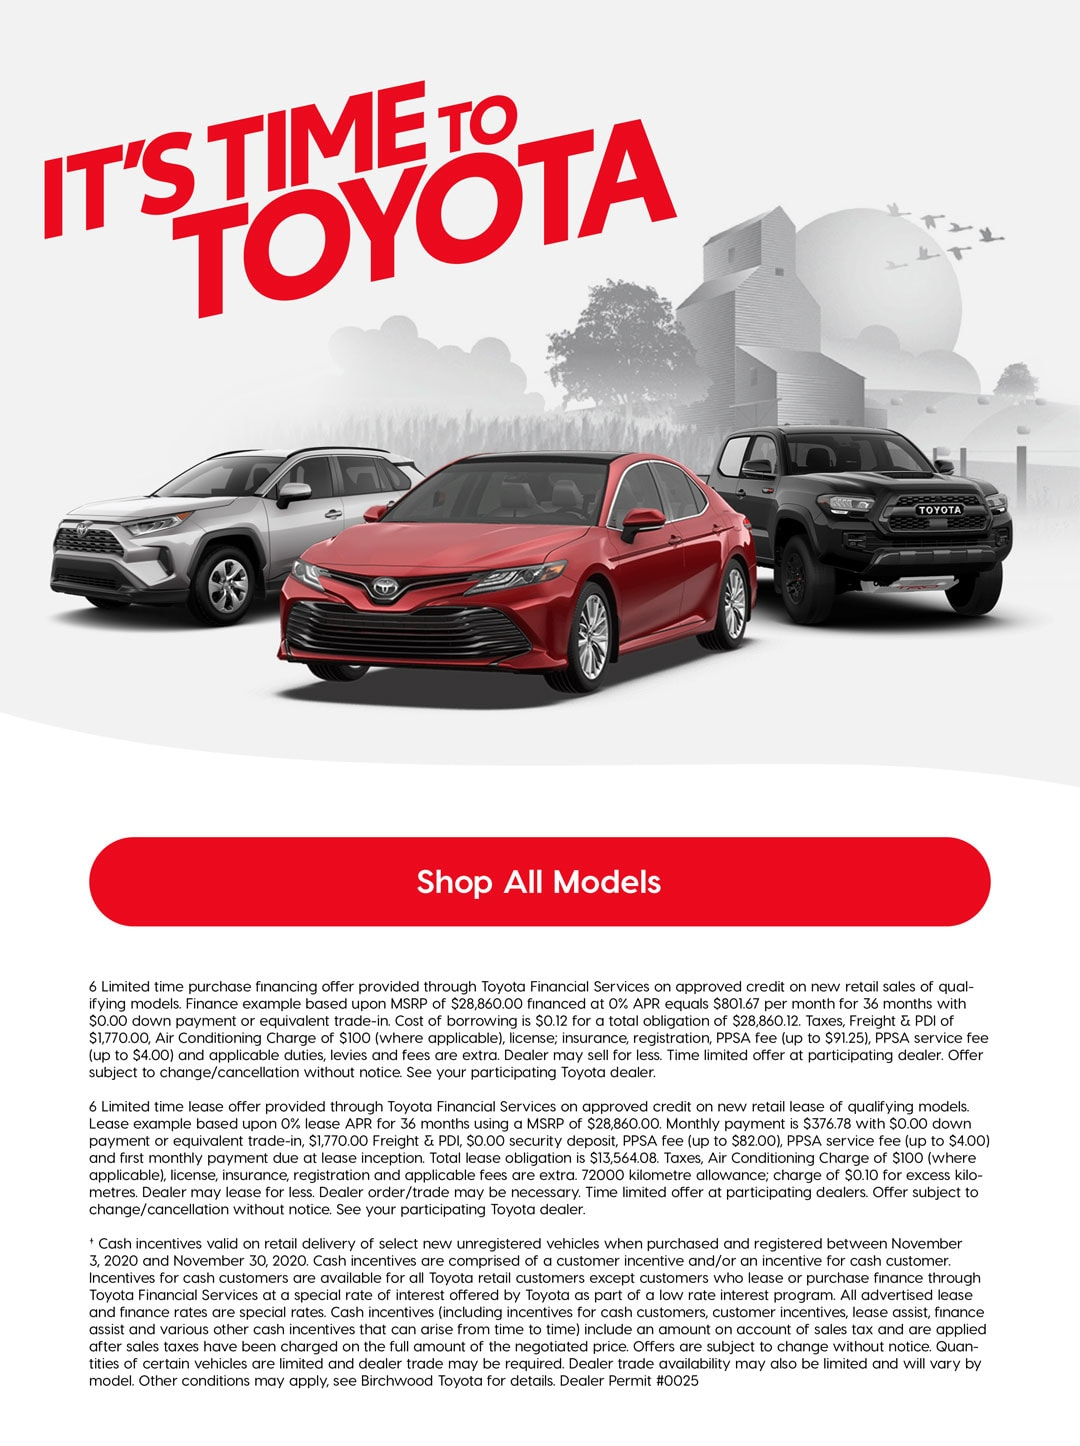 It's Time To Toyota Birchwood Toyota Offer